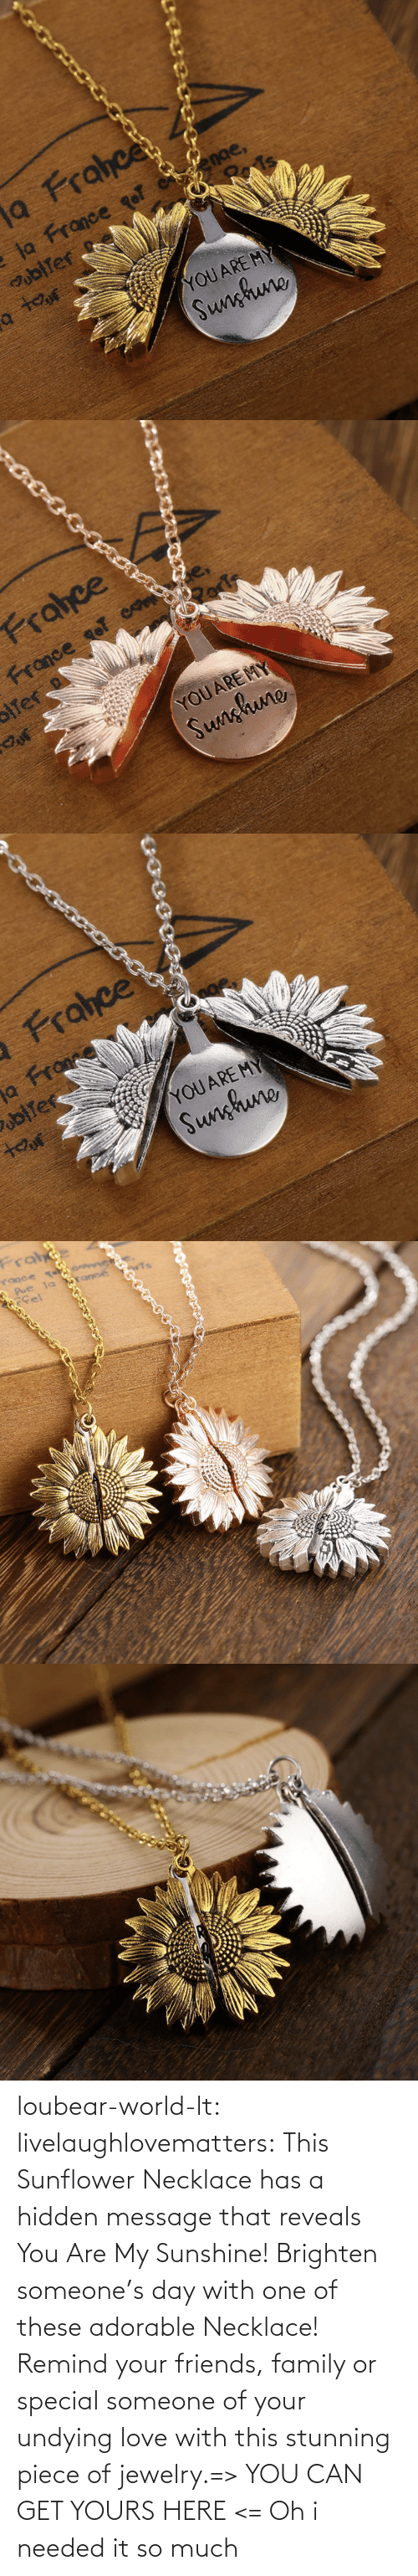 Umblr: loubear-world-lt:  livelaughlovematters:  This Sunflower Necklace has a hidden message that reveals You Are My Sunshine! Brighten someone's day with one of these adorable Necklace! Remind your friends, family or special someone of your undying love with this stunning piece of jewelry.=> YOU CAN GET YOURS HERE <=   Oh i needed it so much